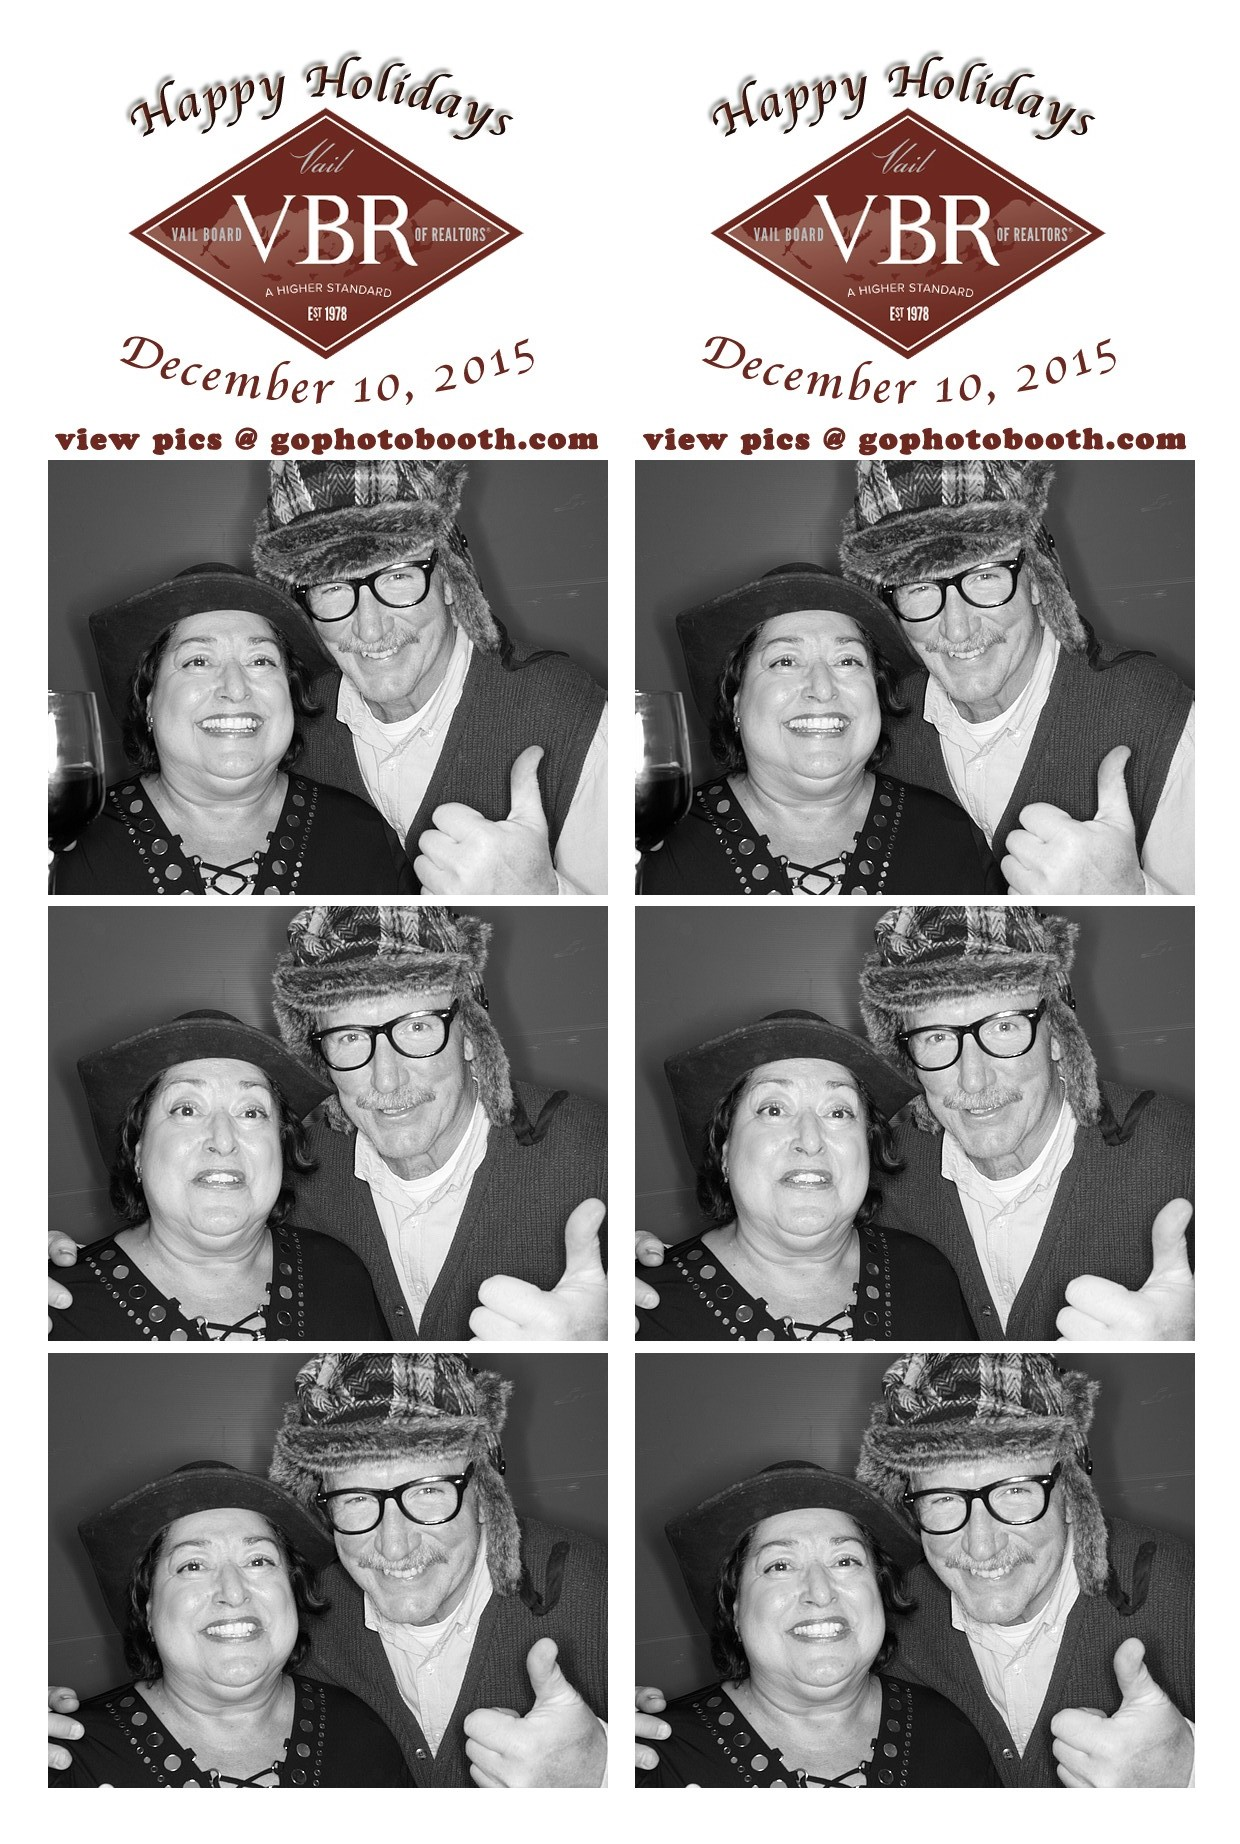 VBR holiday party photo booth 12/10/15